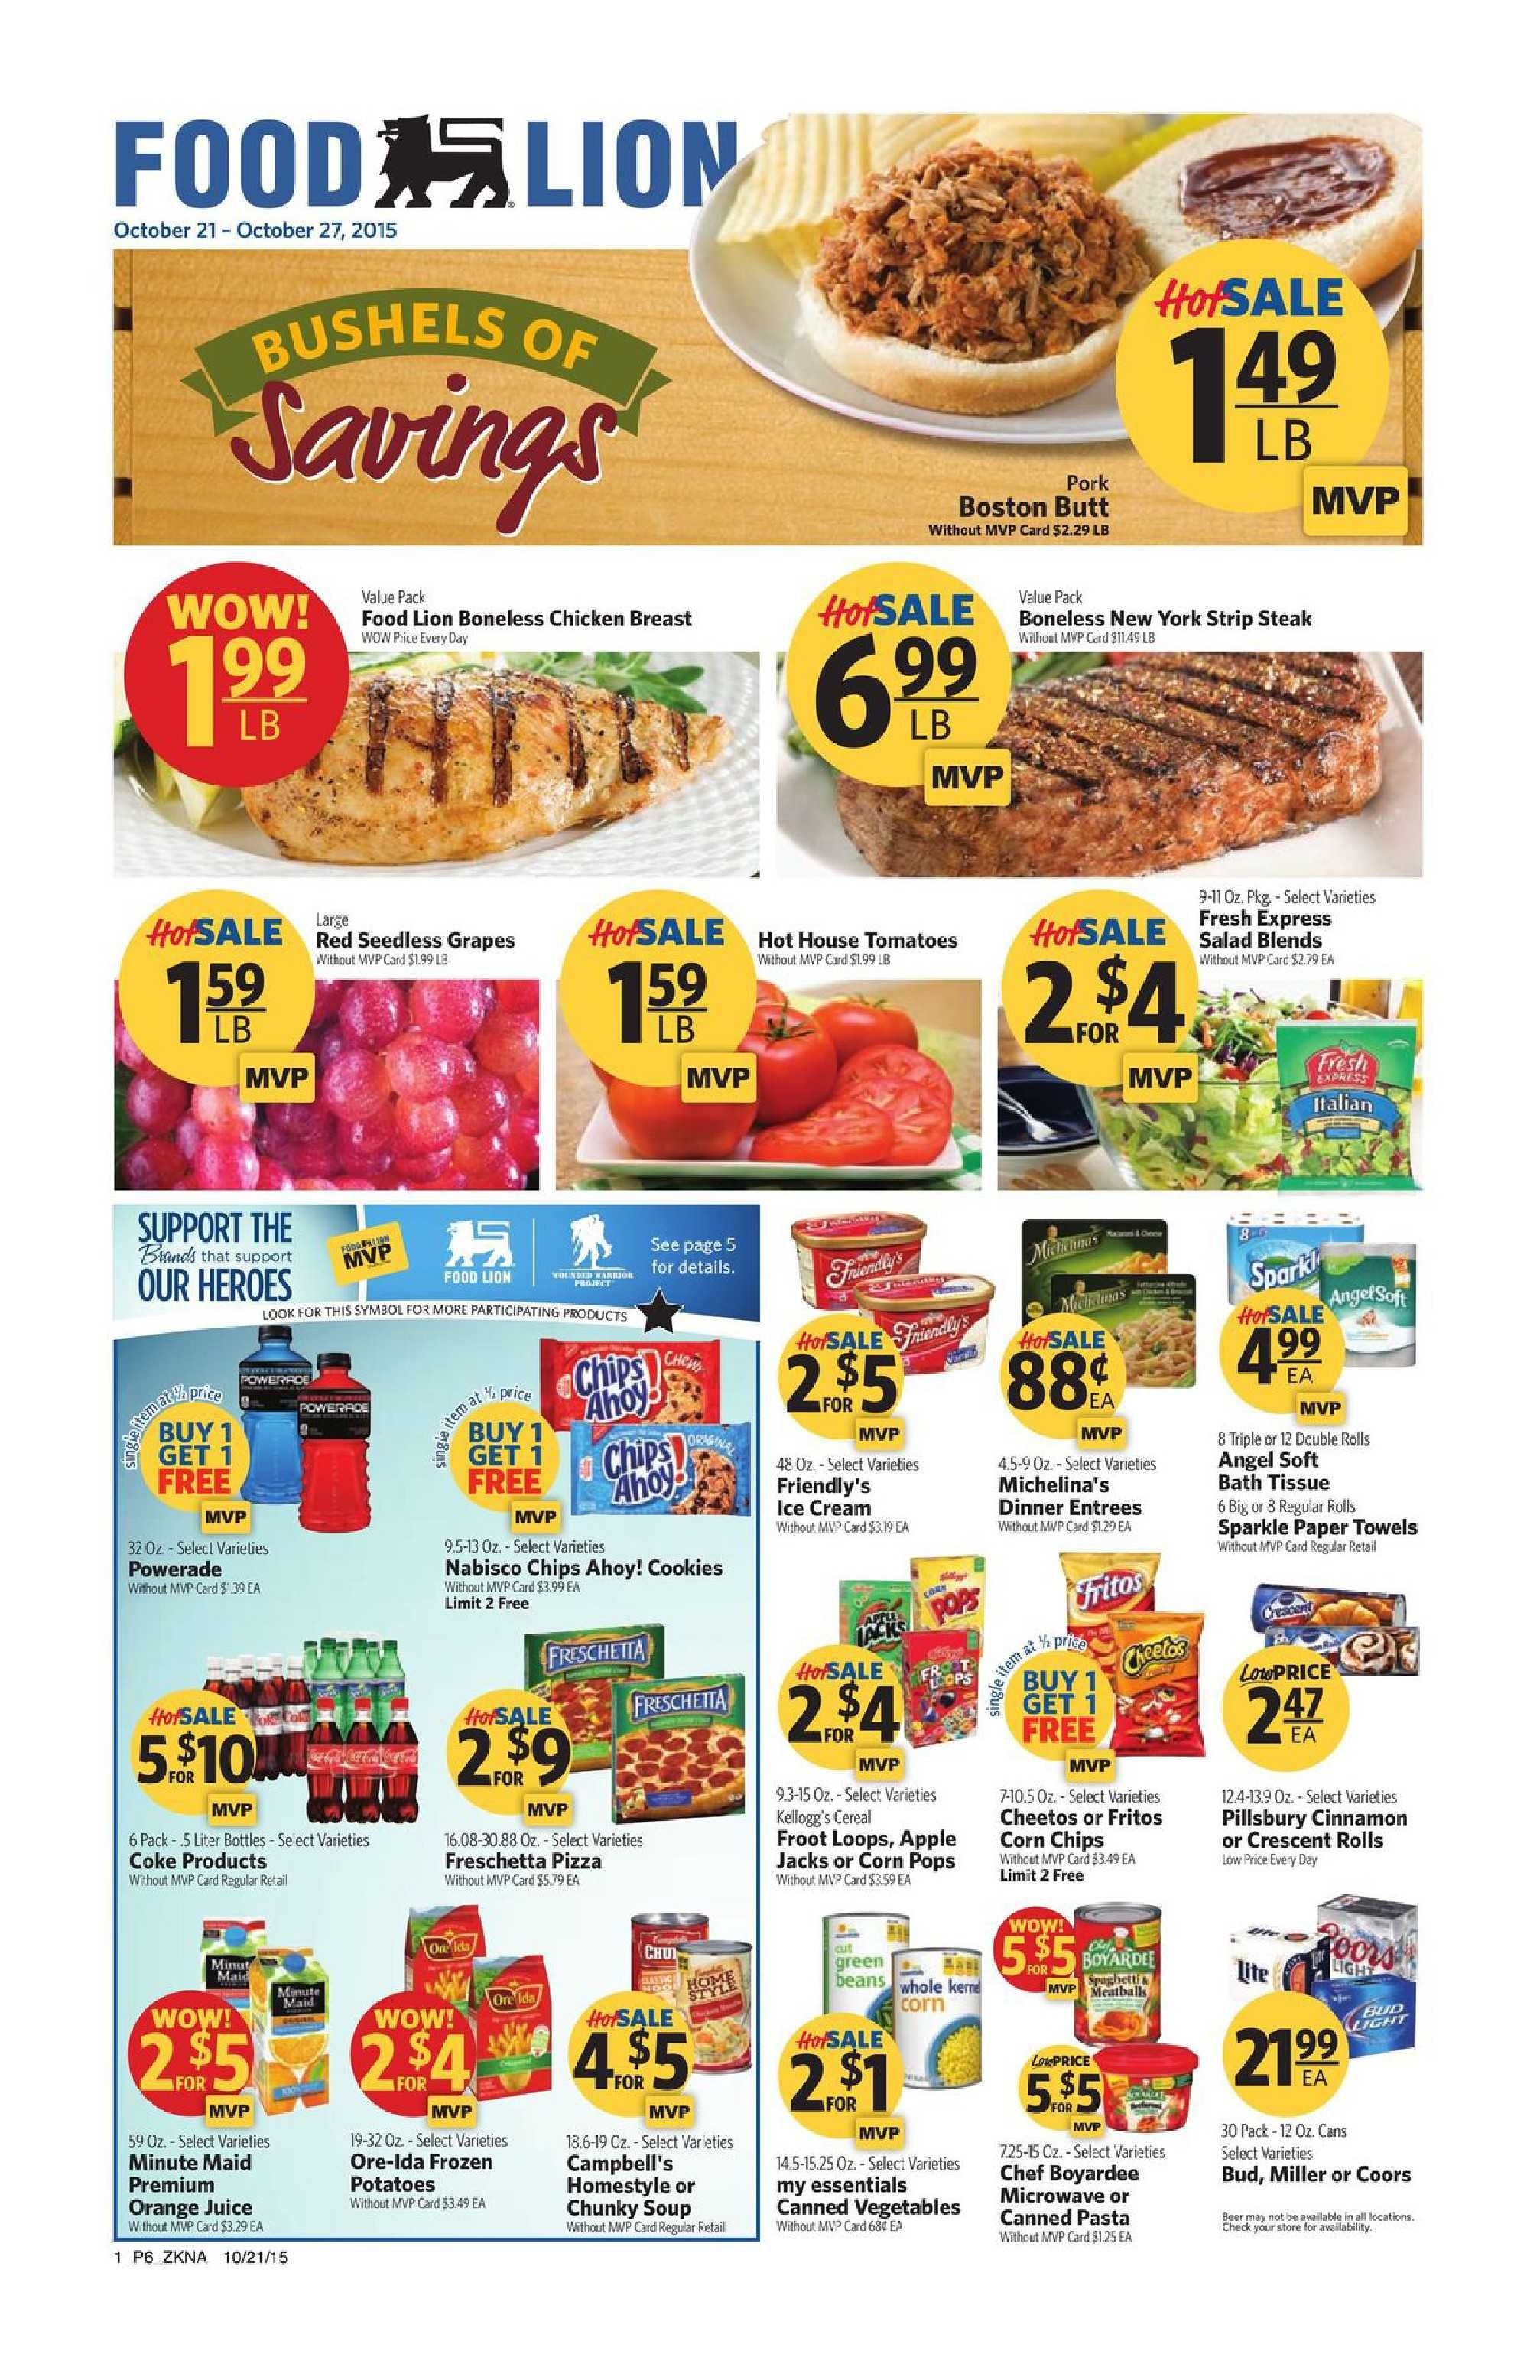 Food lion weekly ad october 21 27 2015 http www